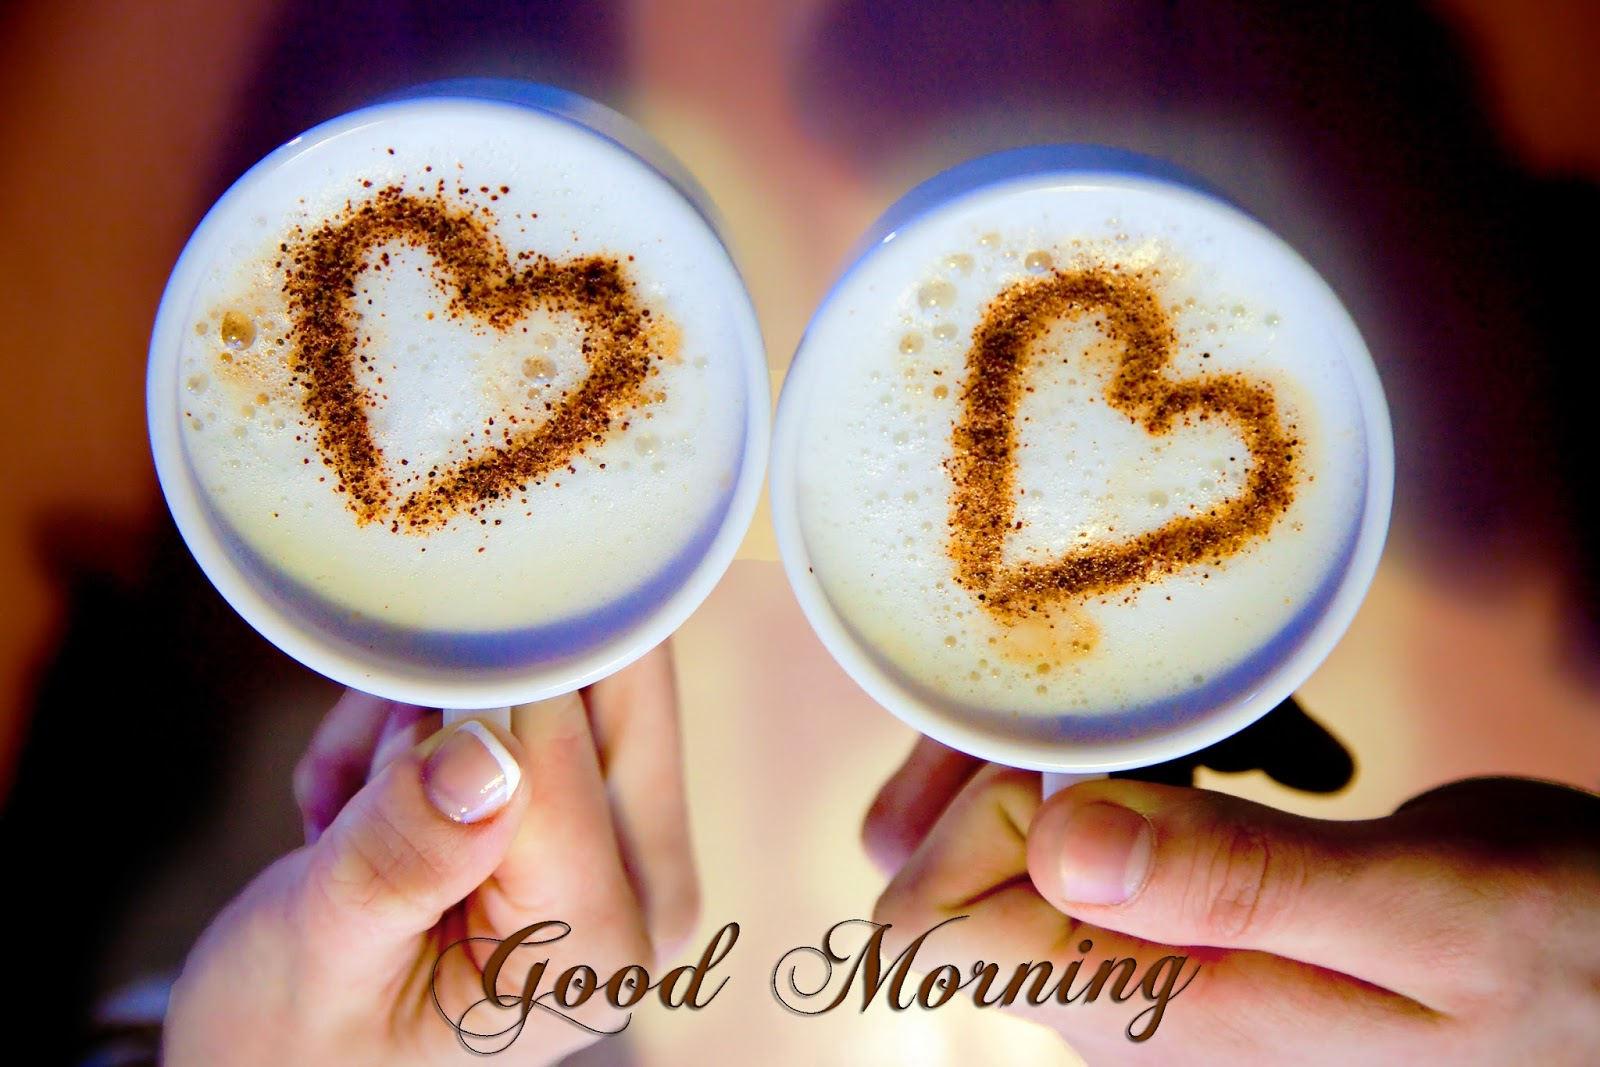 File Name : Have-A-Coffee-Good-Morning-HD-Wallpapers.jpg Resolution